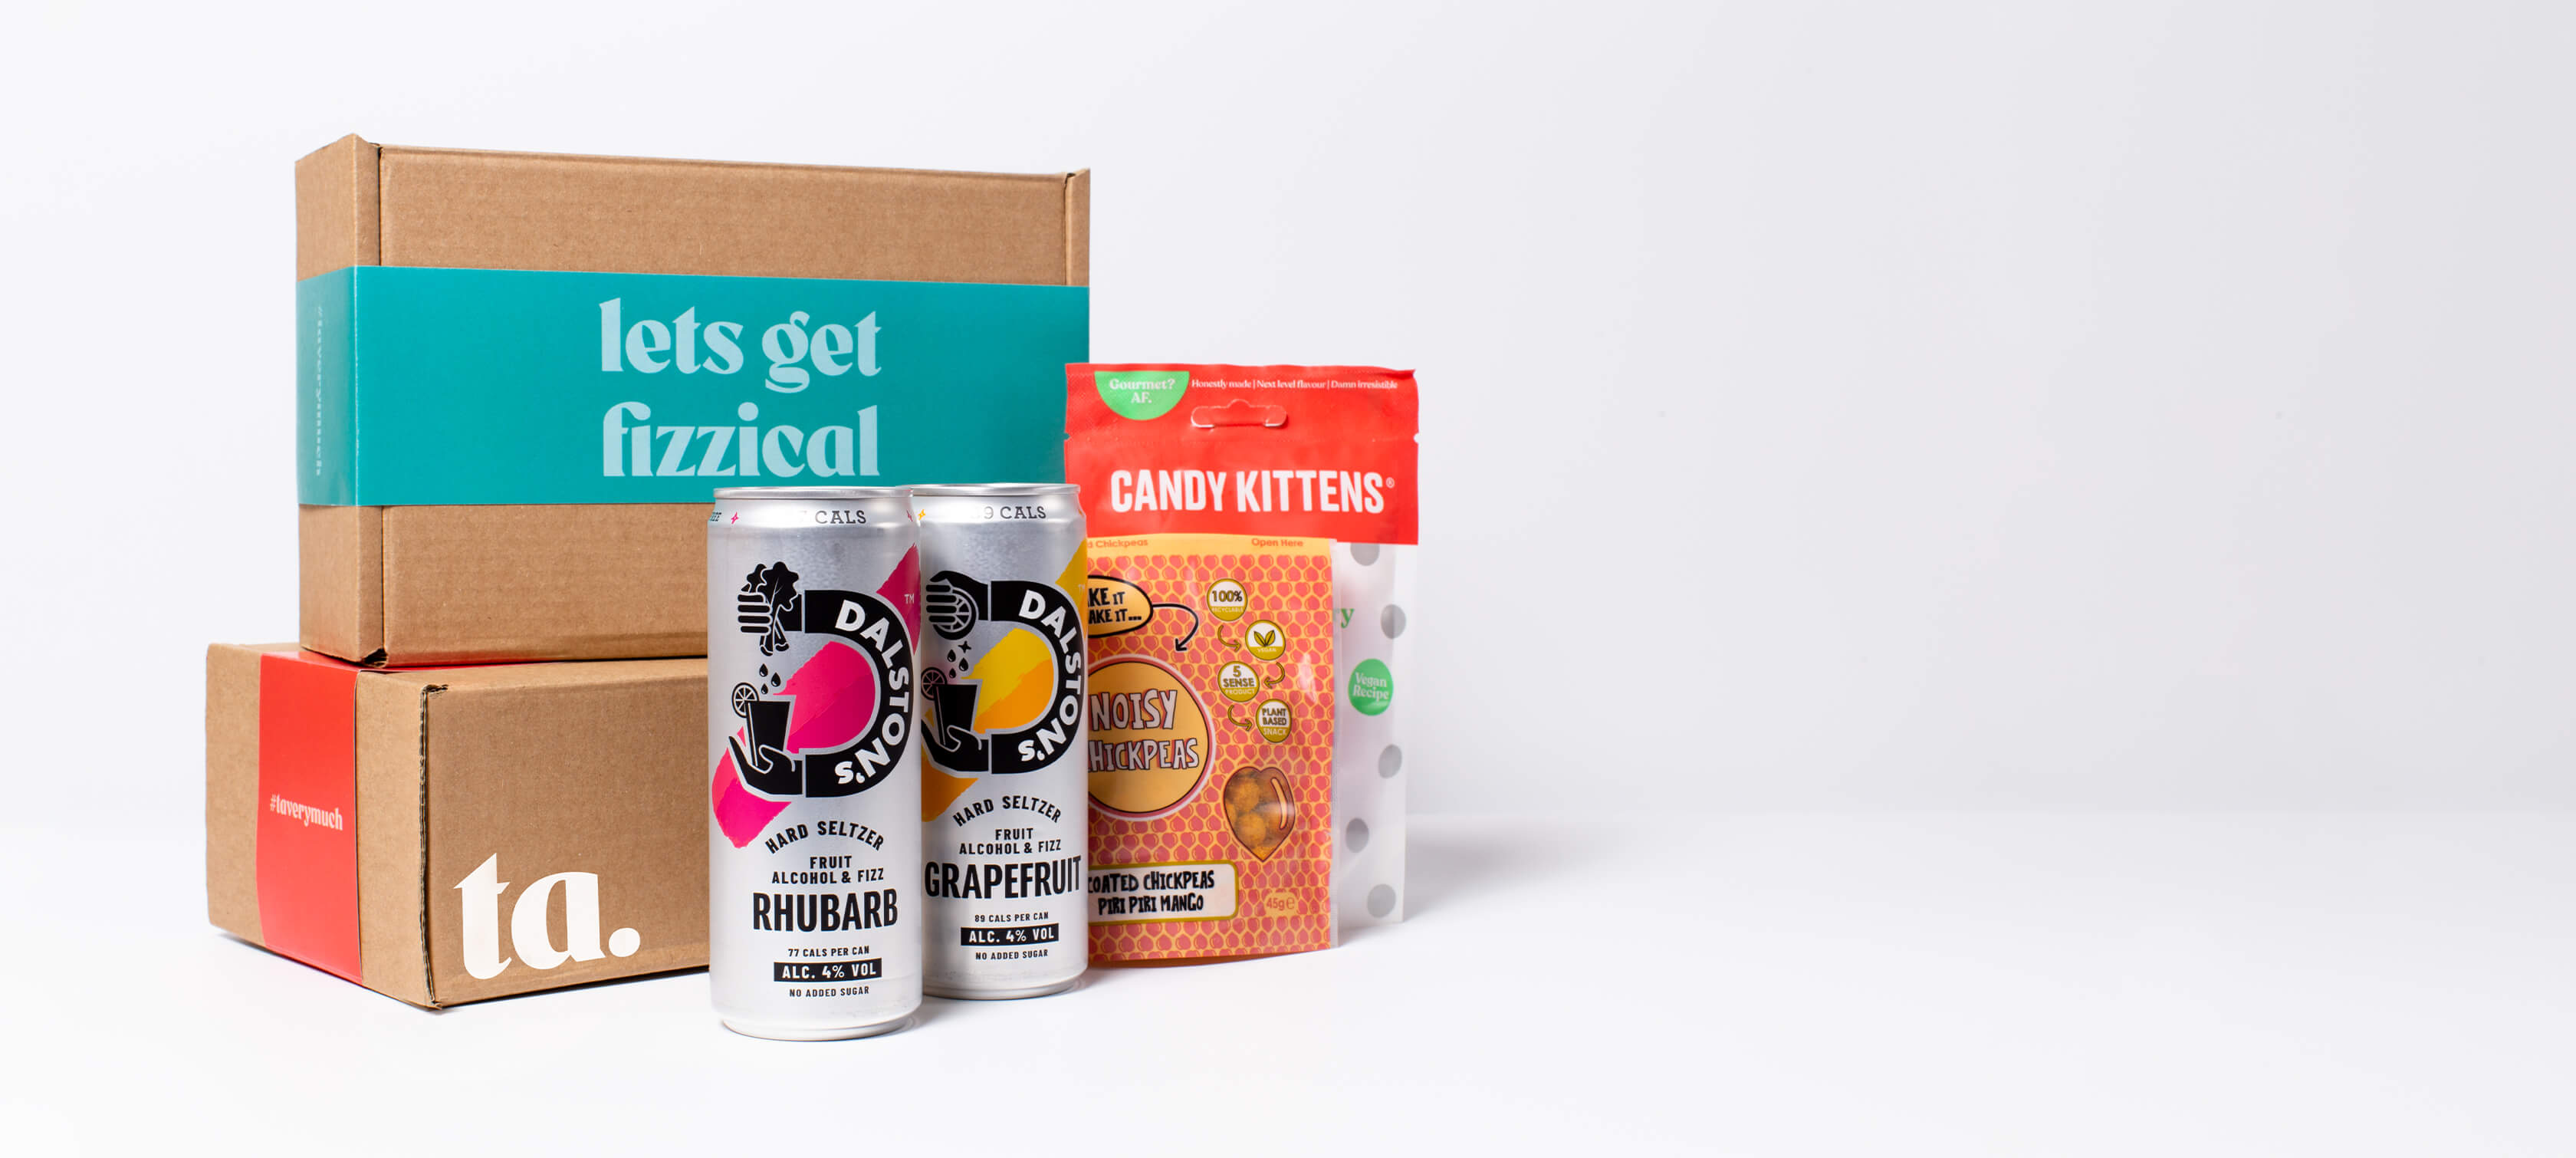 """""""lets get fizzical"""" ta. gift box. Includes 2 cans of Dalston's hard seltzer, Candy Kitten sweets & Noisy Snacks."""